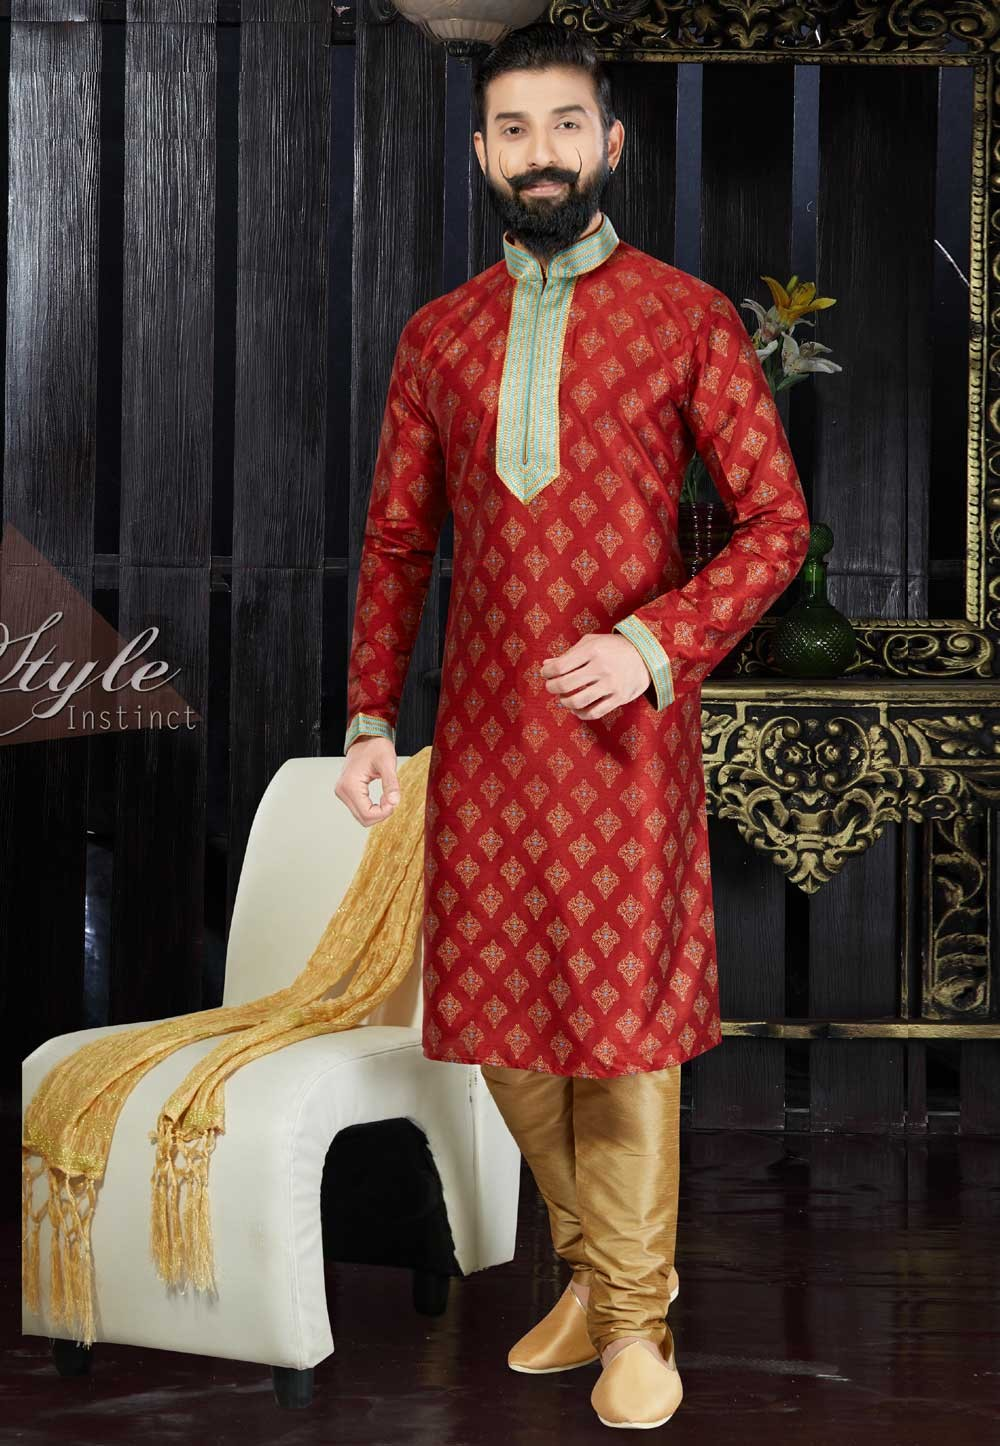 Exquisite Chinese Collar Men's Dupion Art Silk with Thread Work Maroon Readymade Kurta